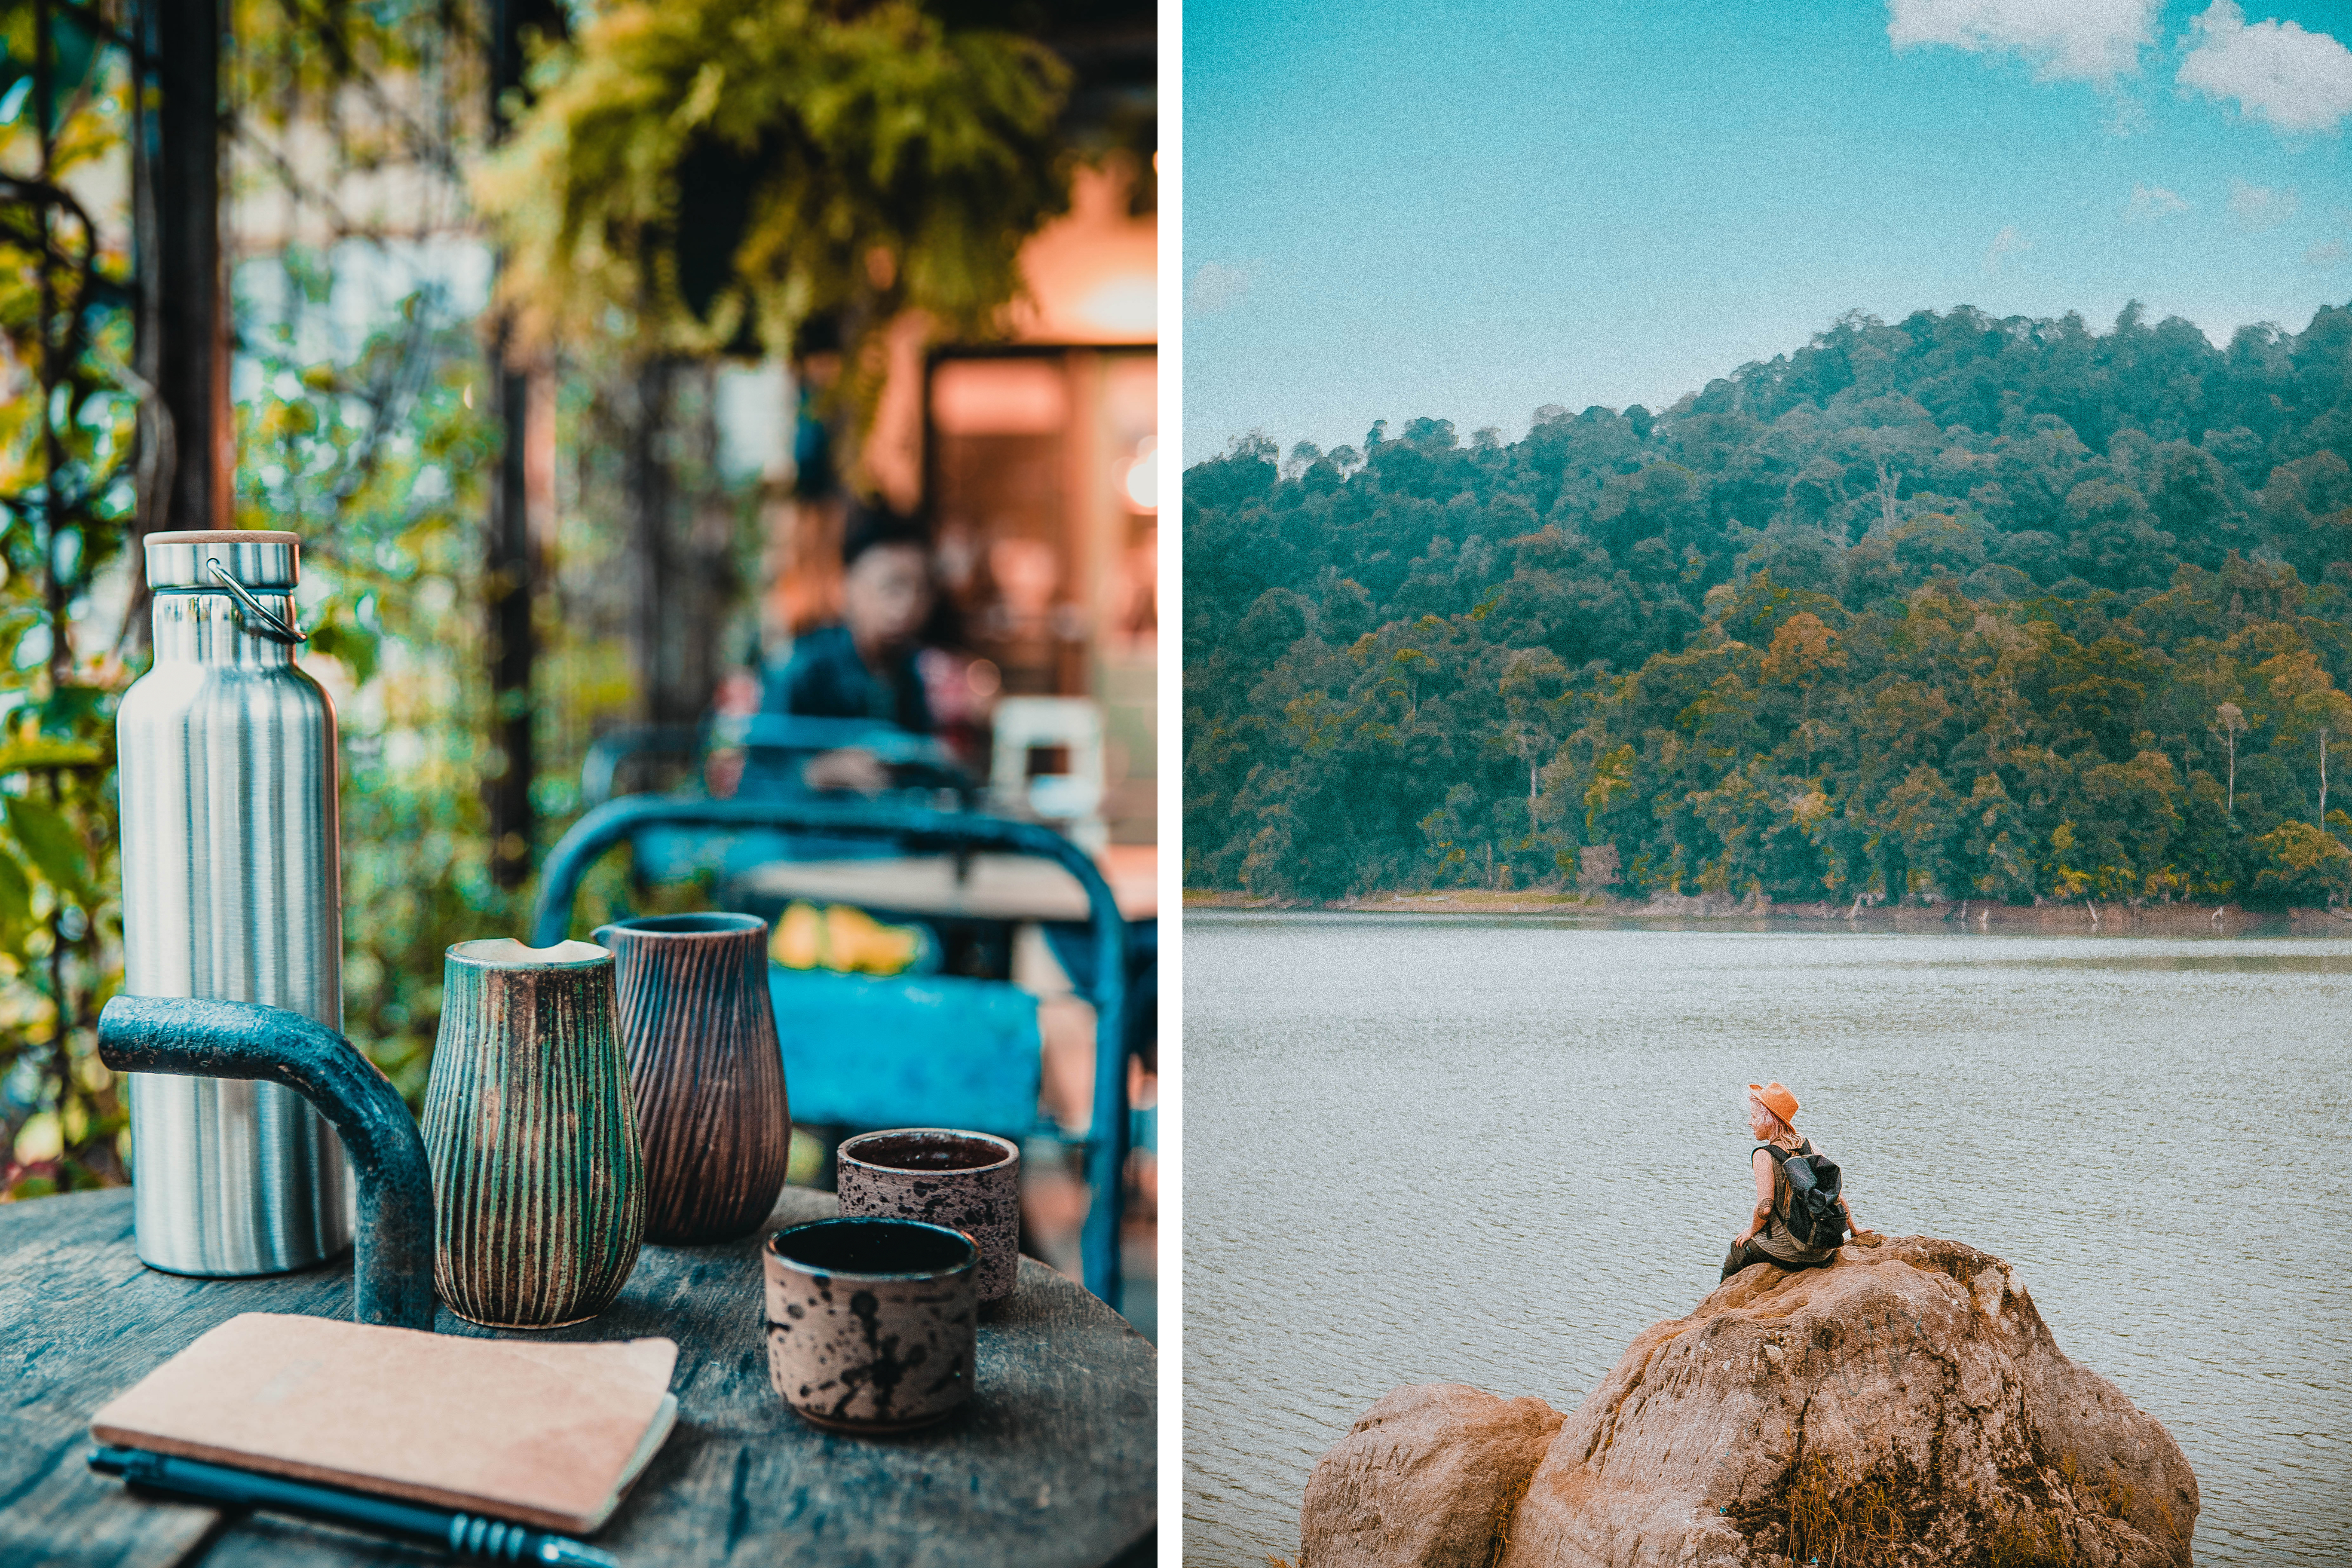 coffee shop bandung blue doors indonesia relax javanese lake